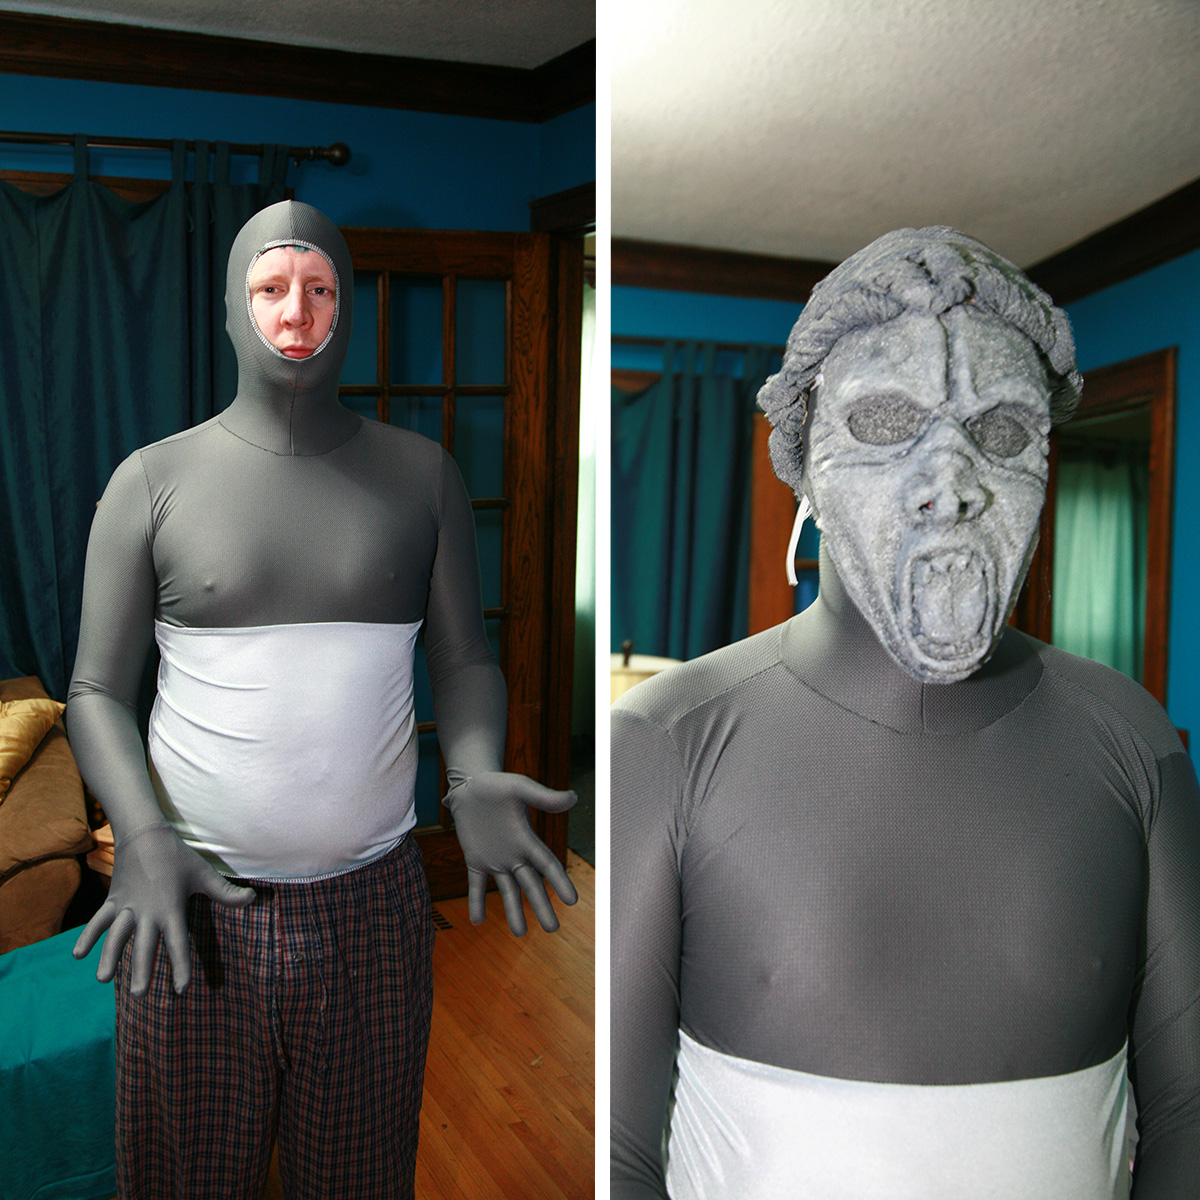 A man in a grey bodysuit that only shows his face, then the same man with a weeping angel mask and a grey wool wig on.